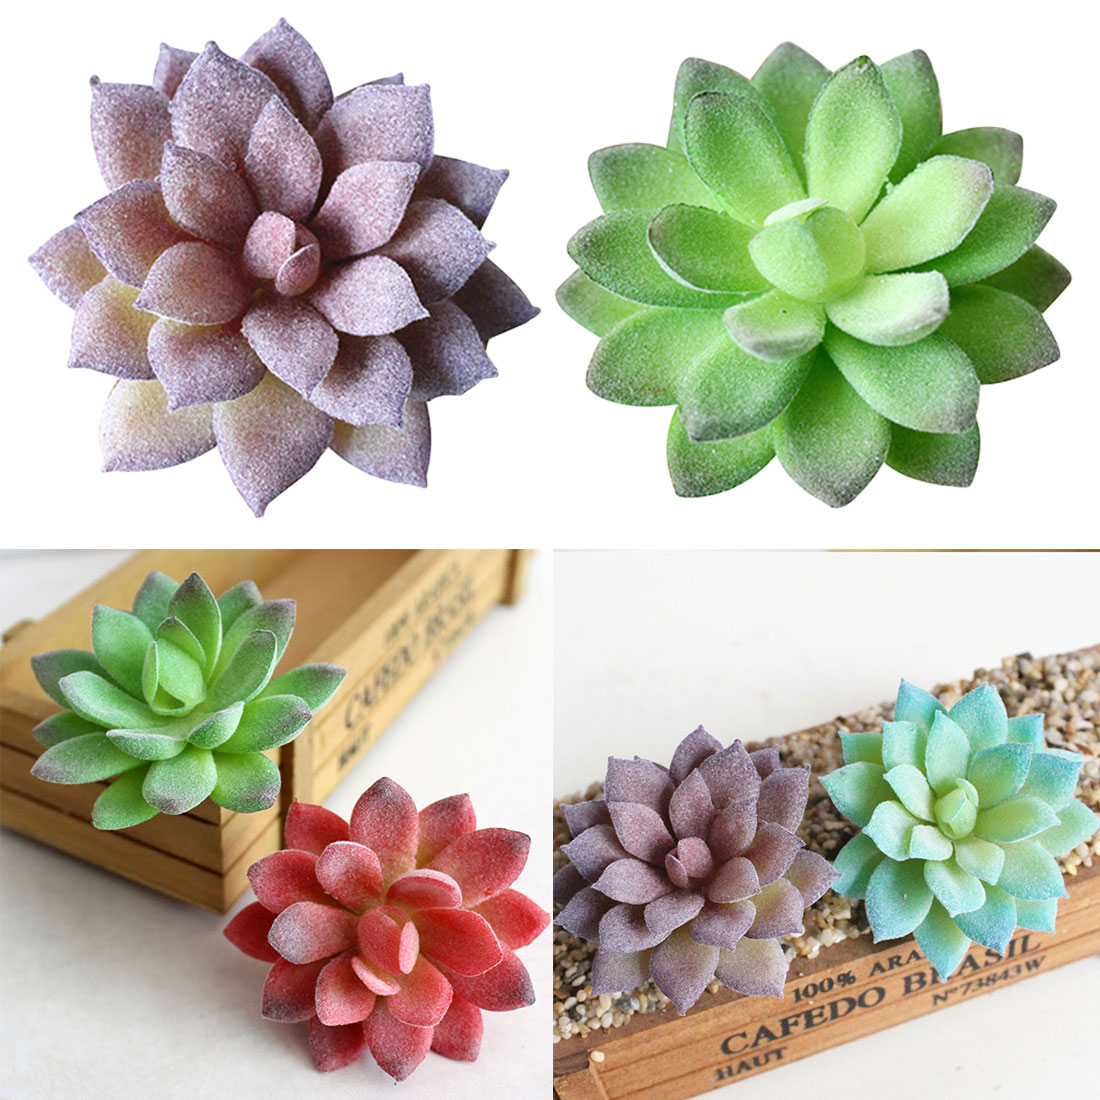 Artificial Decorations New Mini Artificial Simulation Miniature Succulents Diy Fake Plastic Green Plants Office Decor Garden Home Delicate